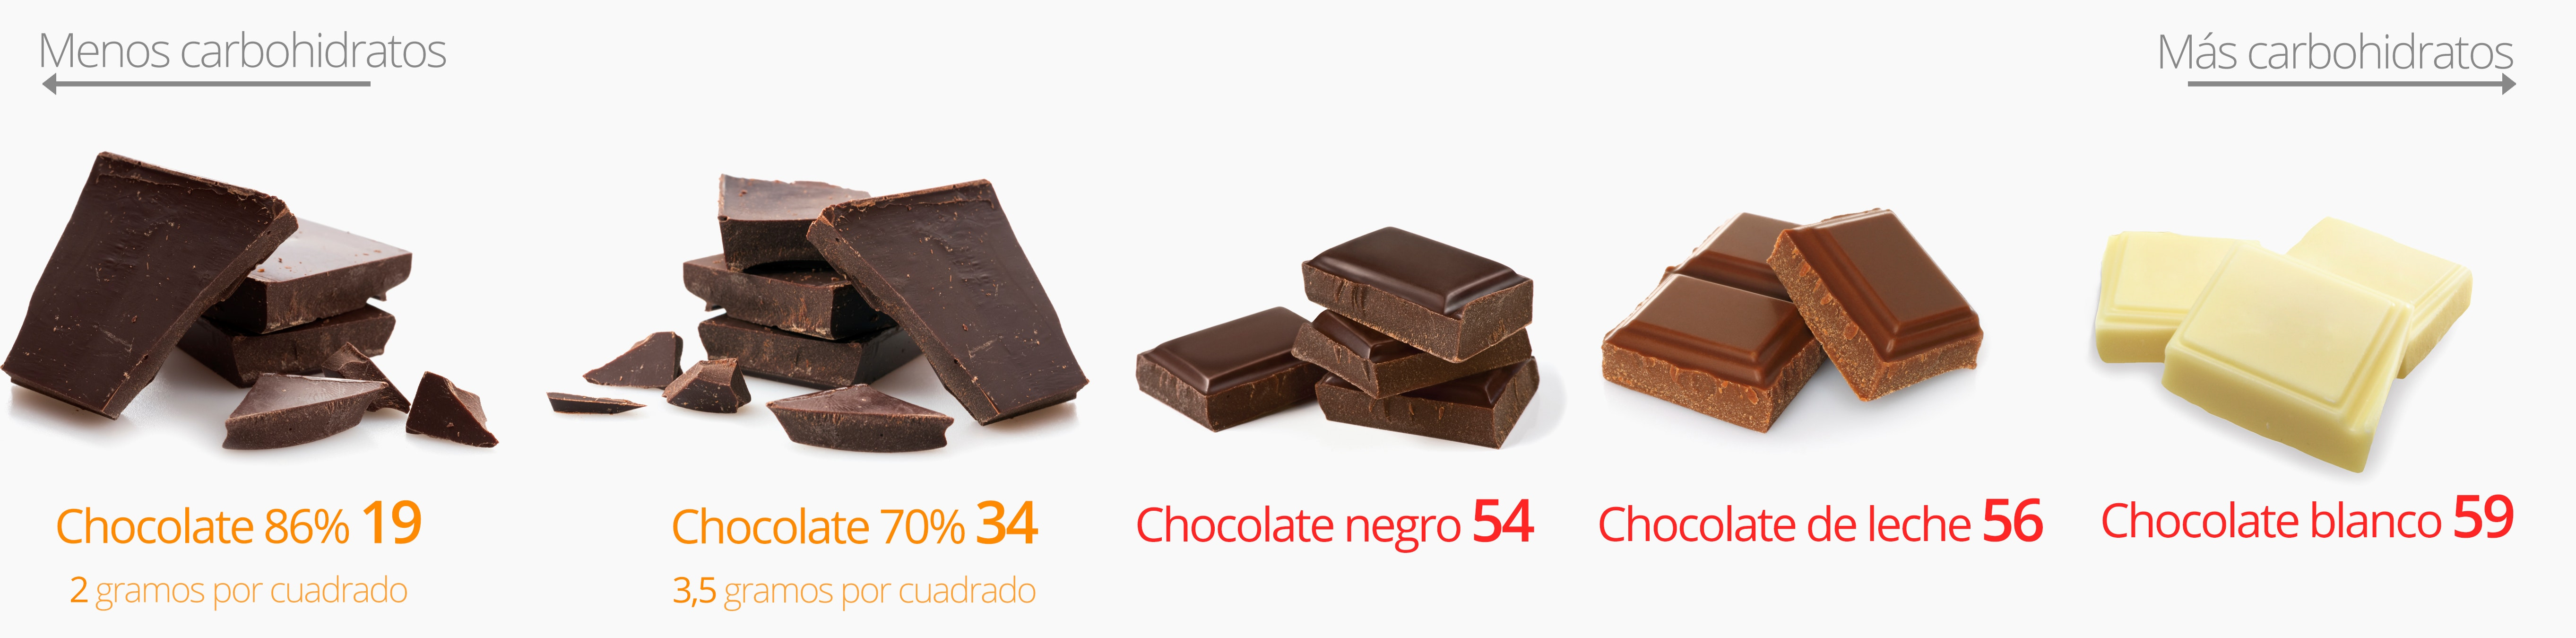 Chocolate na dieta cetogenica